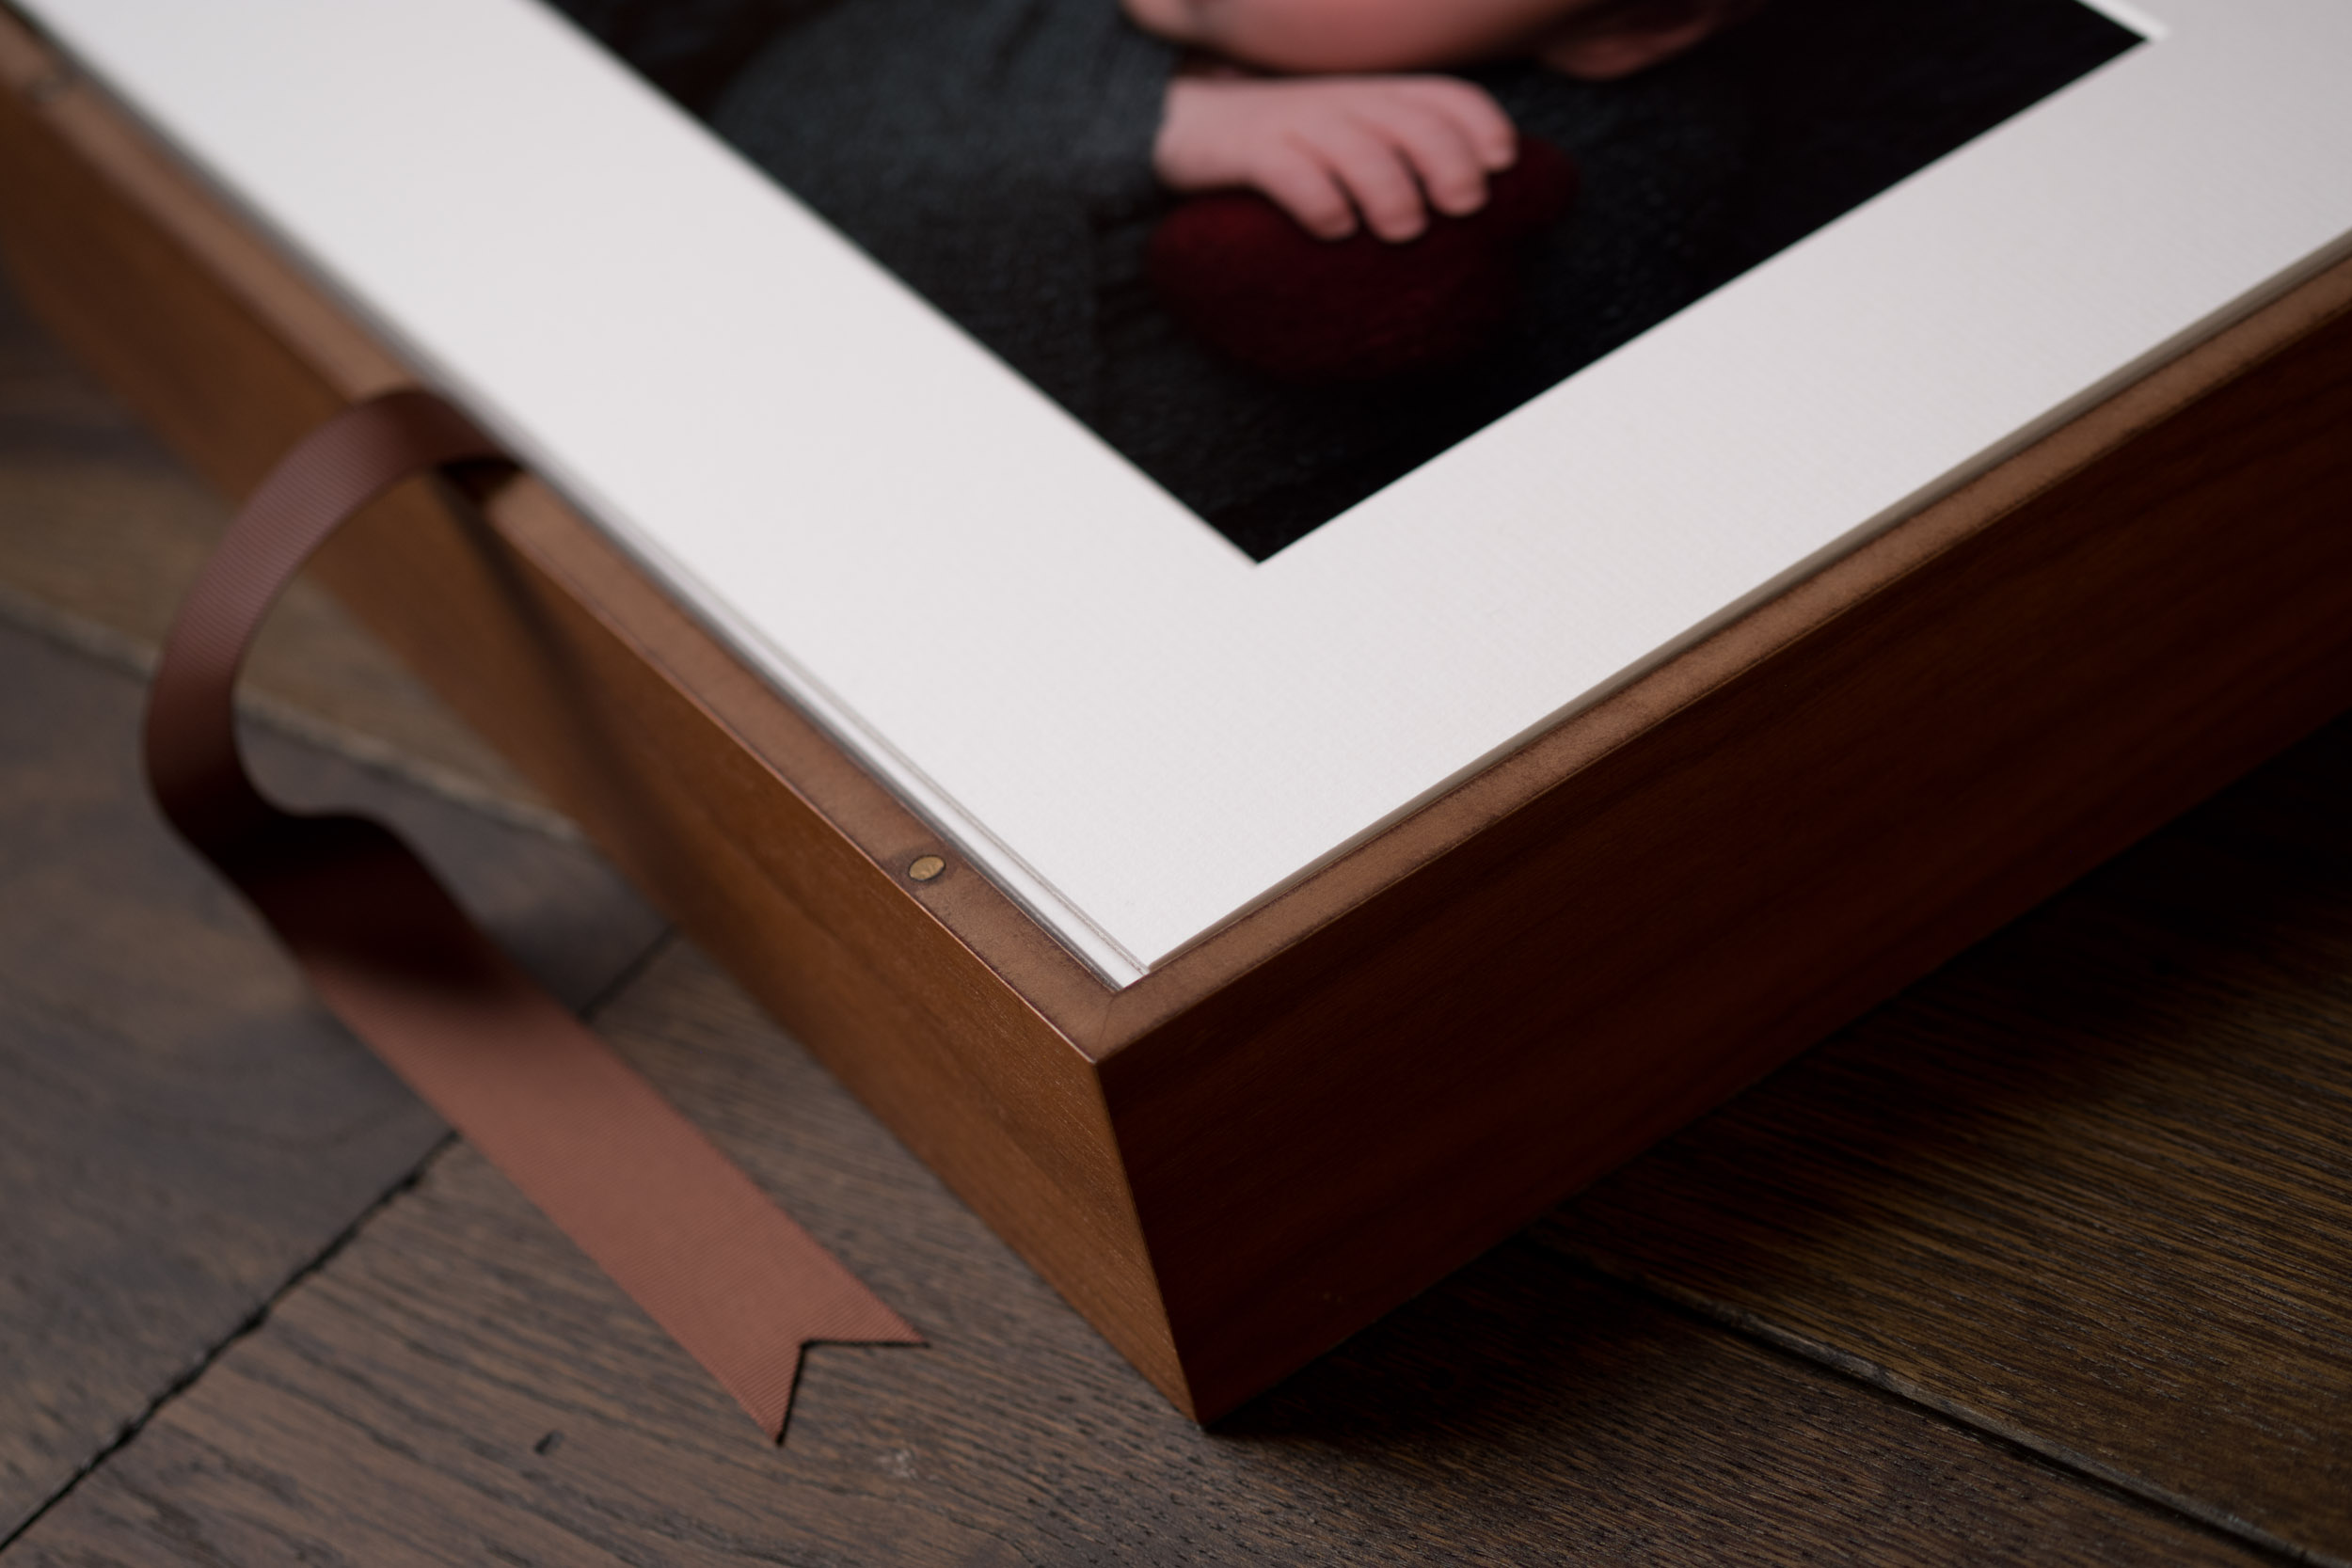 Newborn-Photography-Lincoln-Mounted-images-in-keepsake-hinged-wooden-box-003.jpg